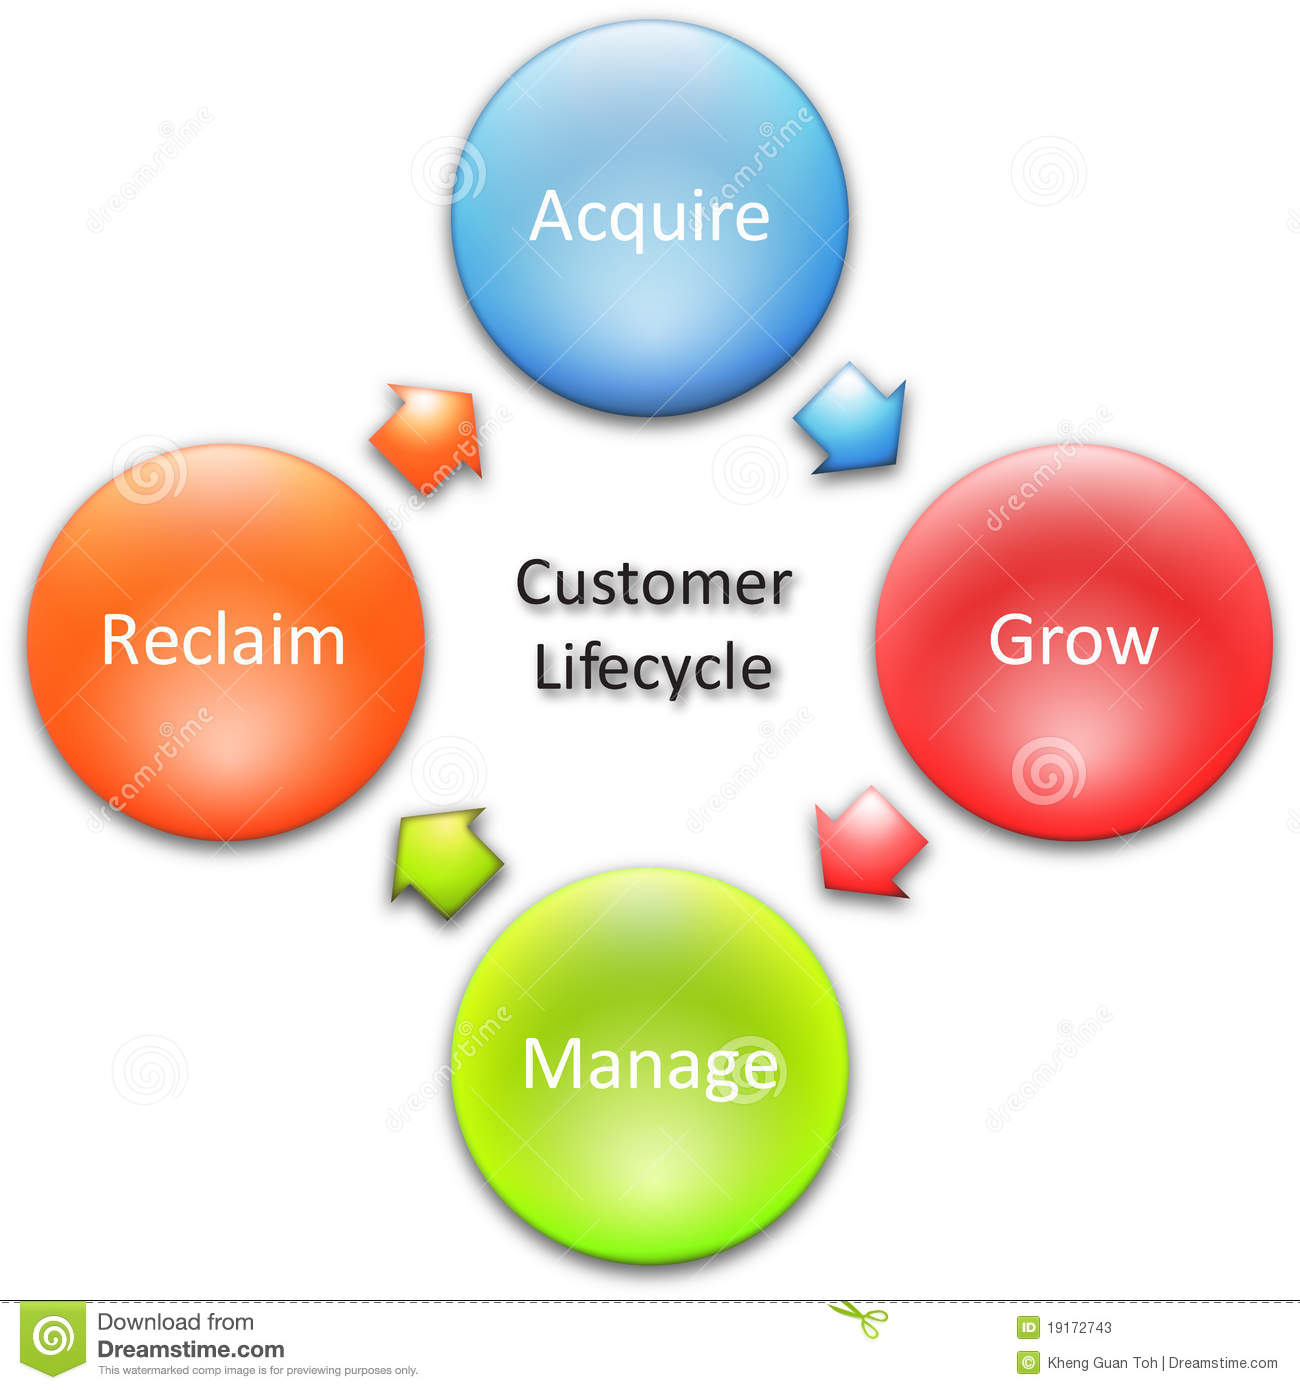 customer lifecycle business diagram stock photos   image    customer lifecycle business diagram